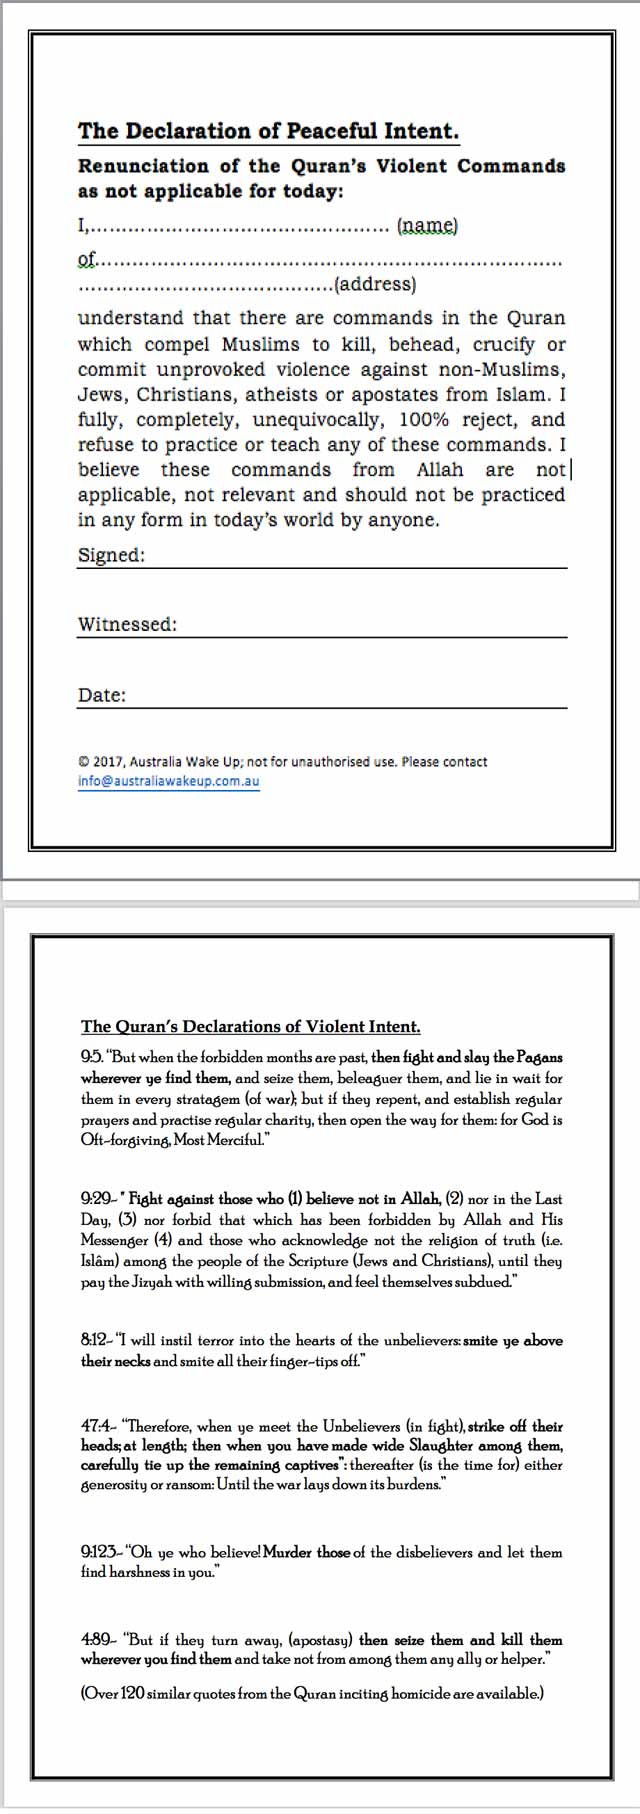 Declaration of Peaceful Intent for Muslims